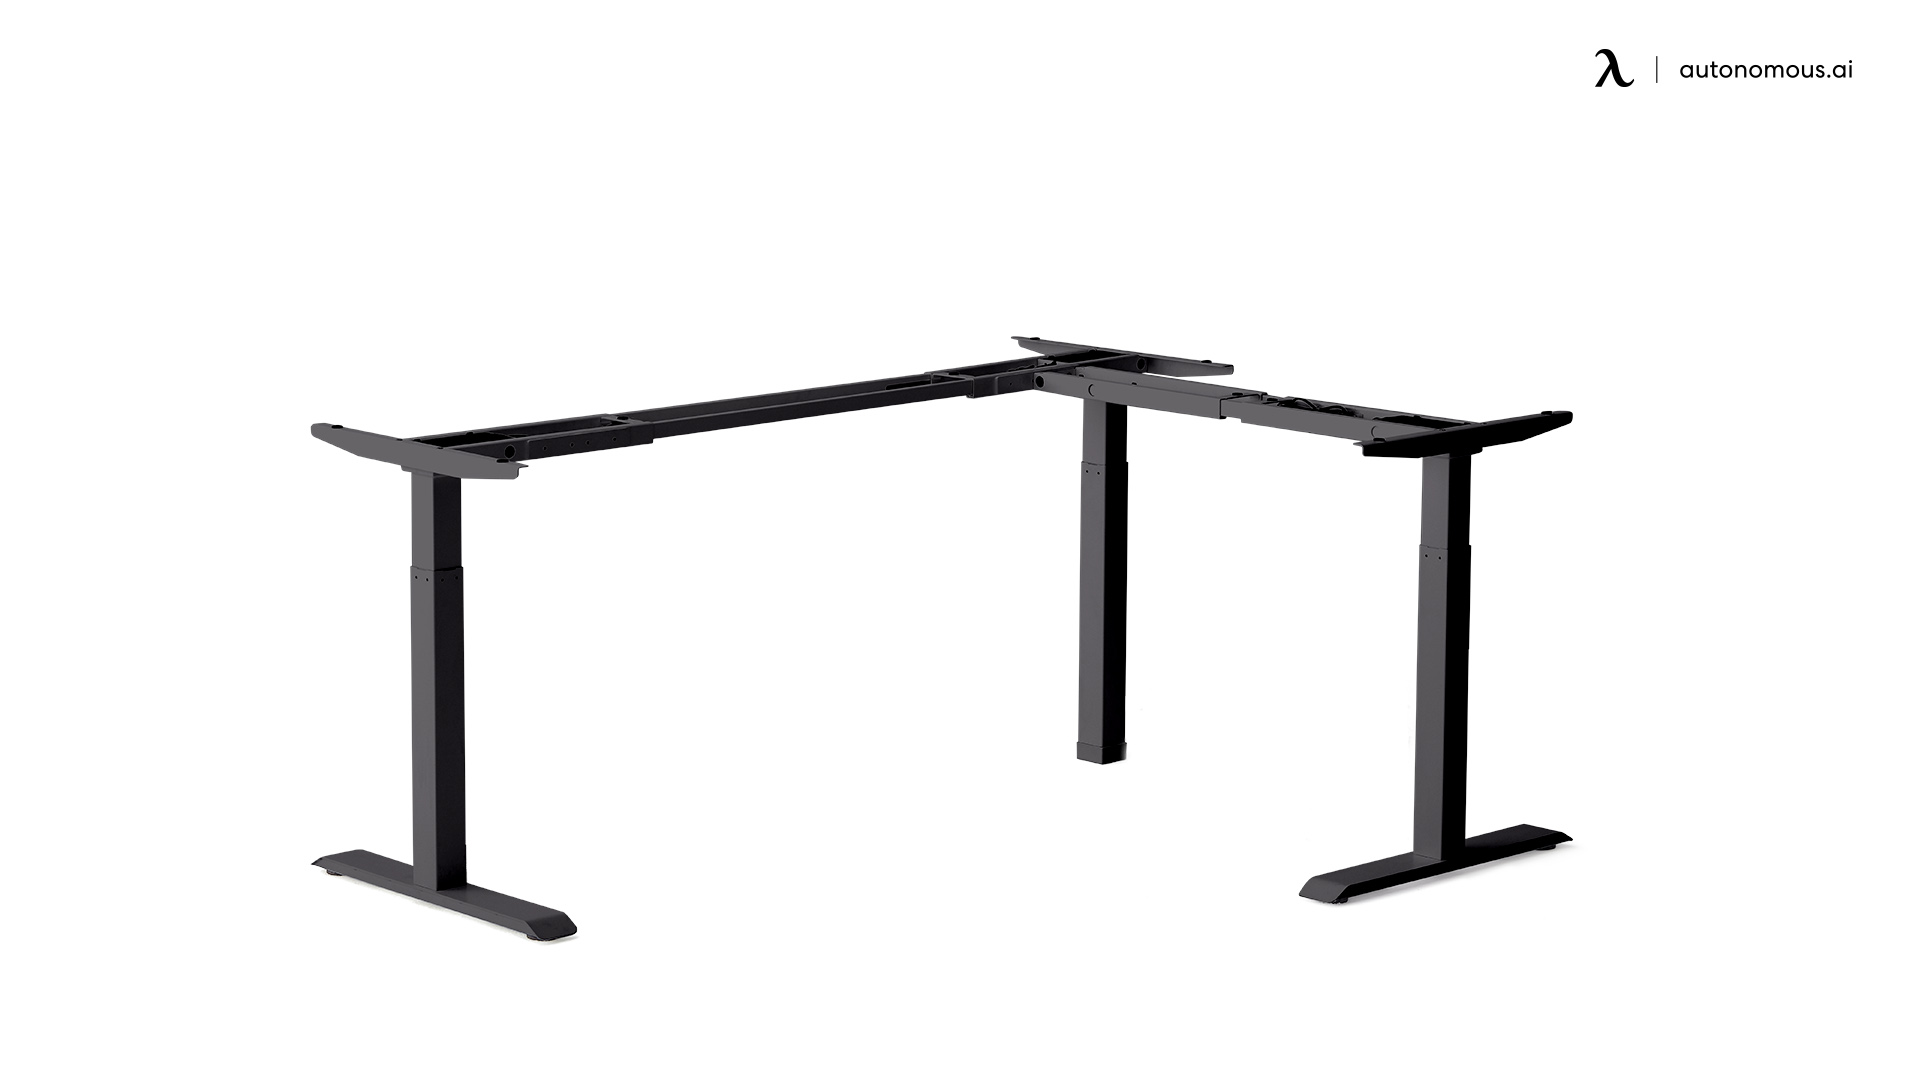 How to Choose the Right Desk Frame for You